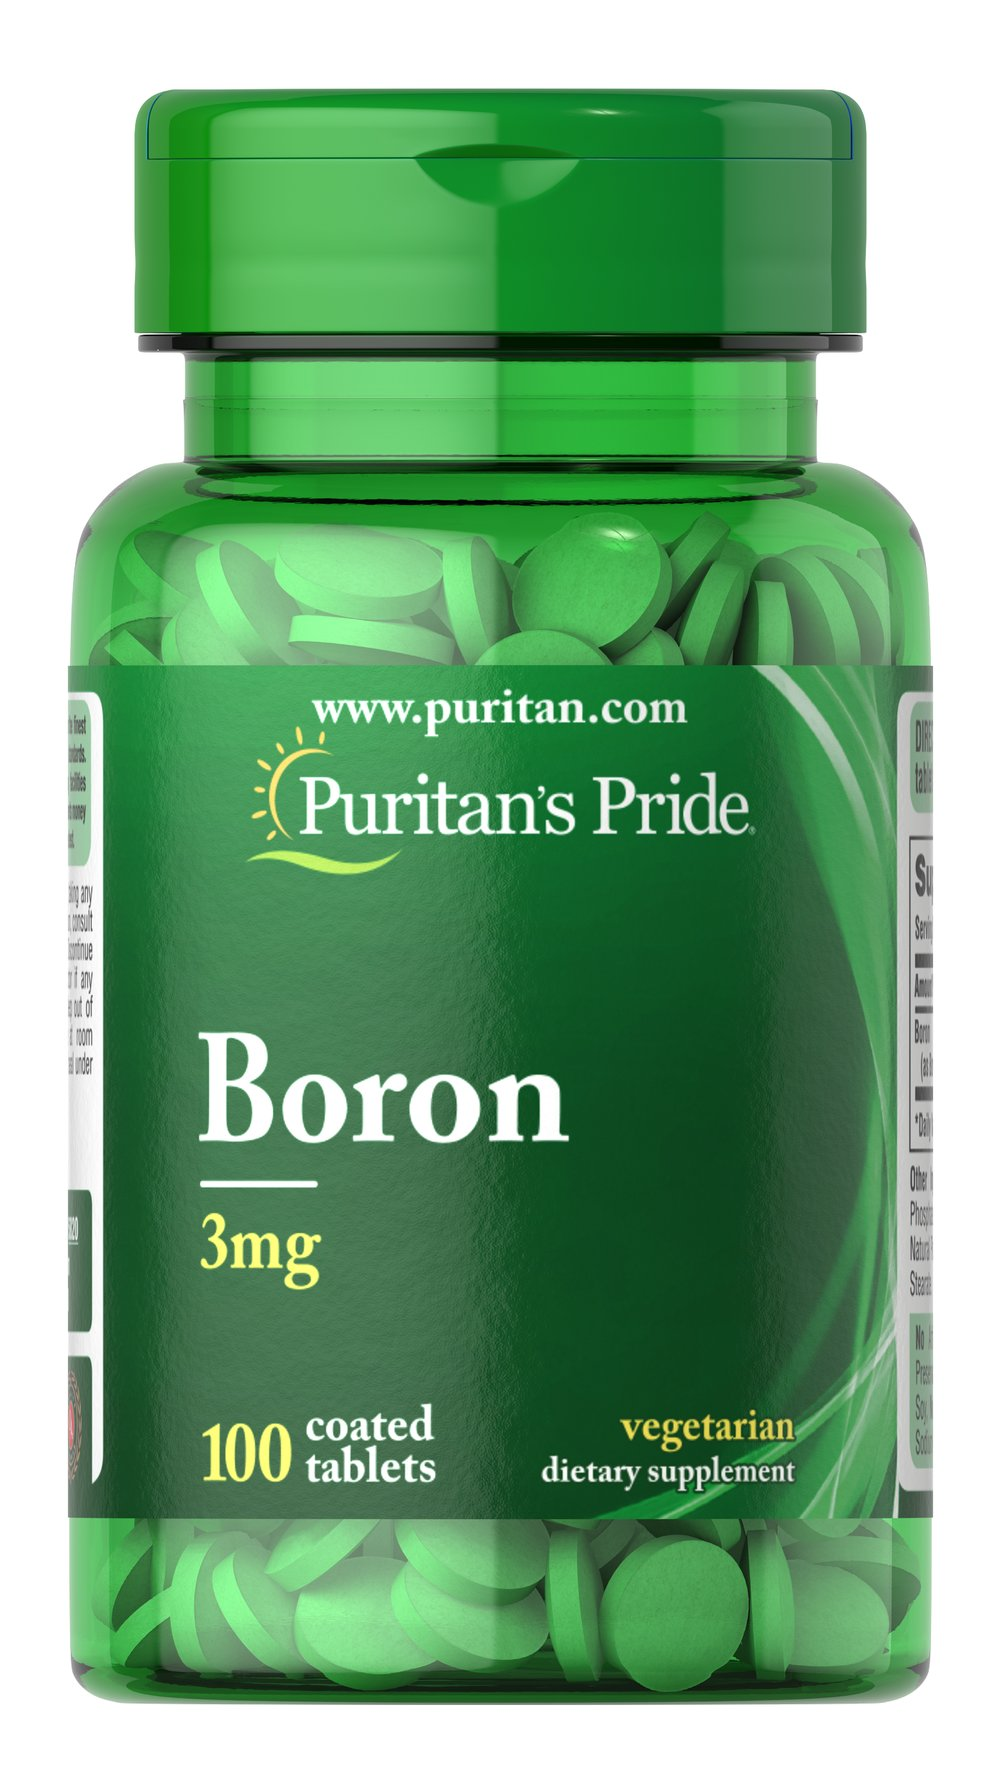 Boron 3 mg  100 Tablets 3 mg $6.49